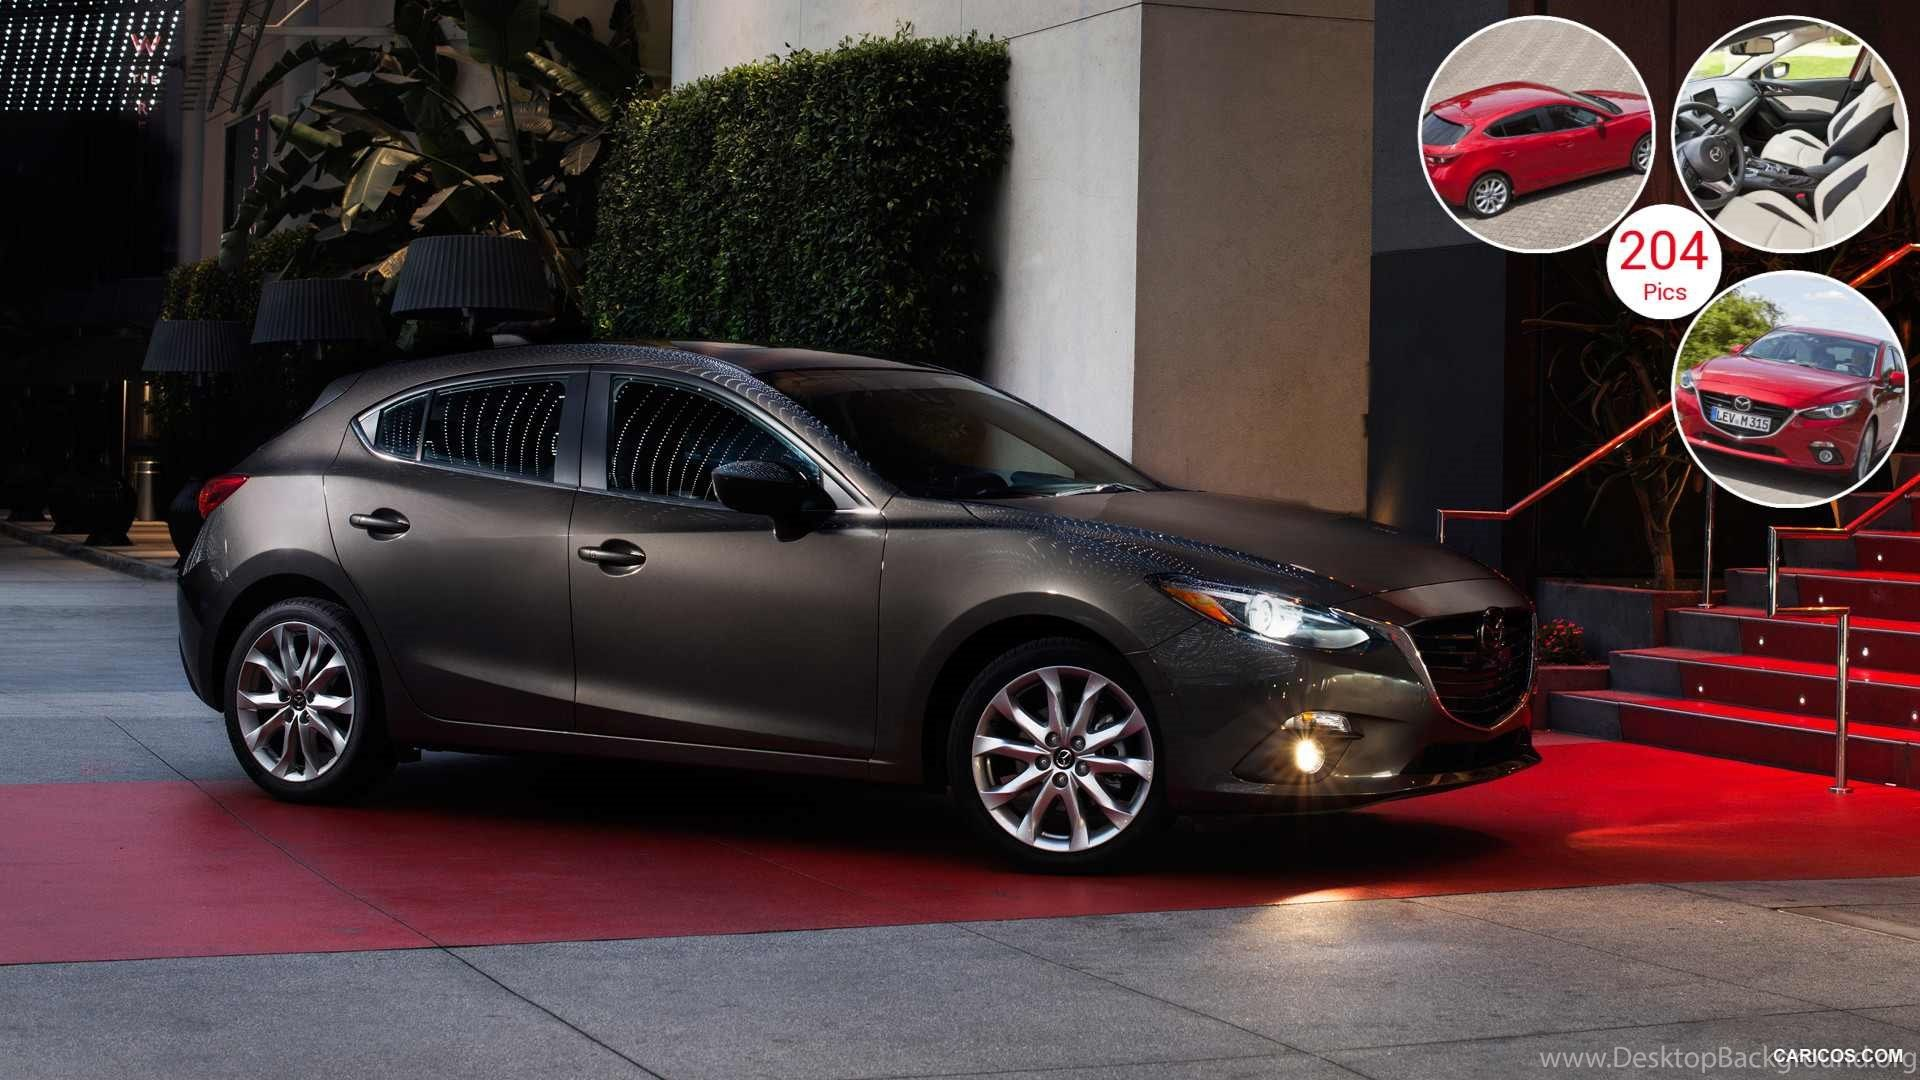 2014 Mazda 3 Hatchback Wallpapers Desktop Background